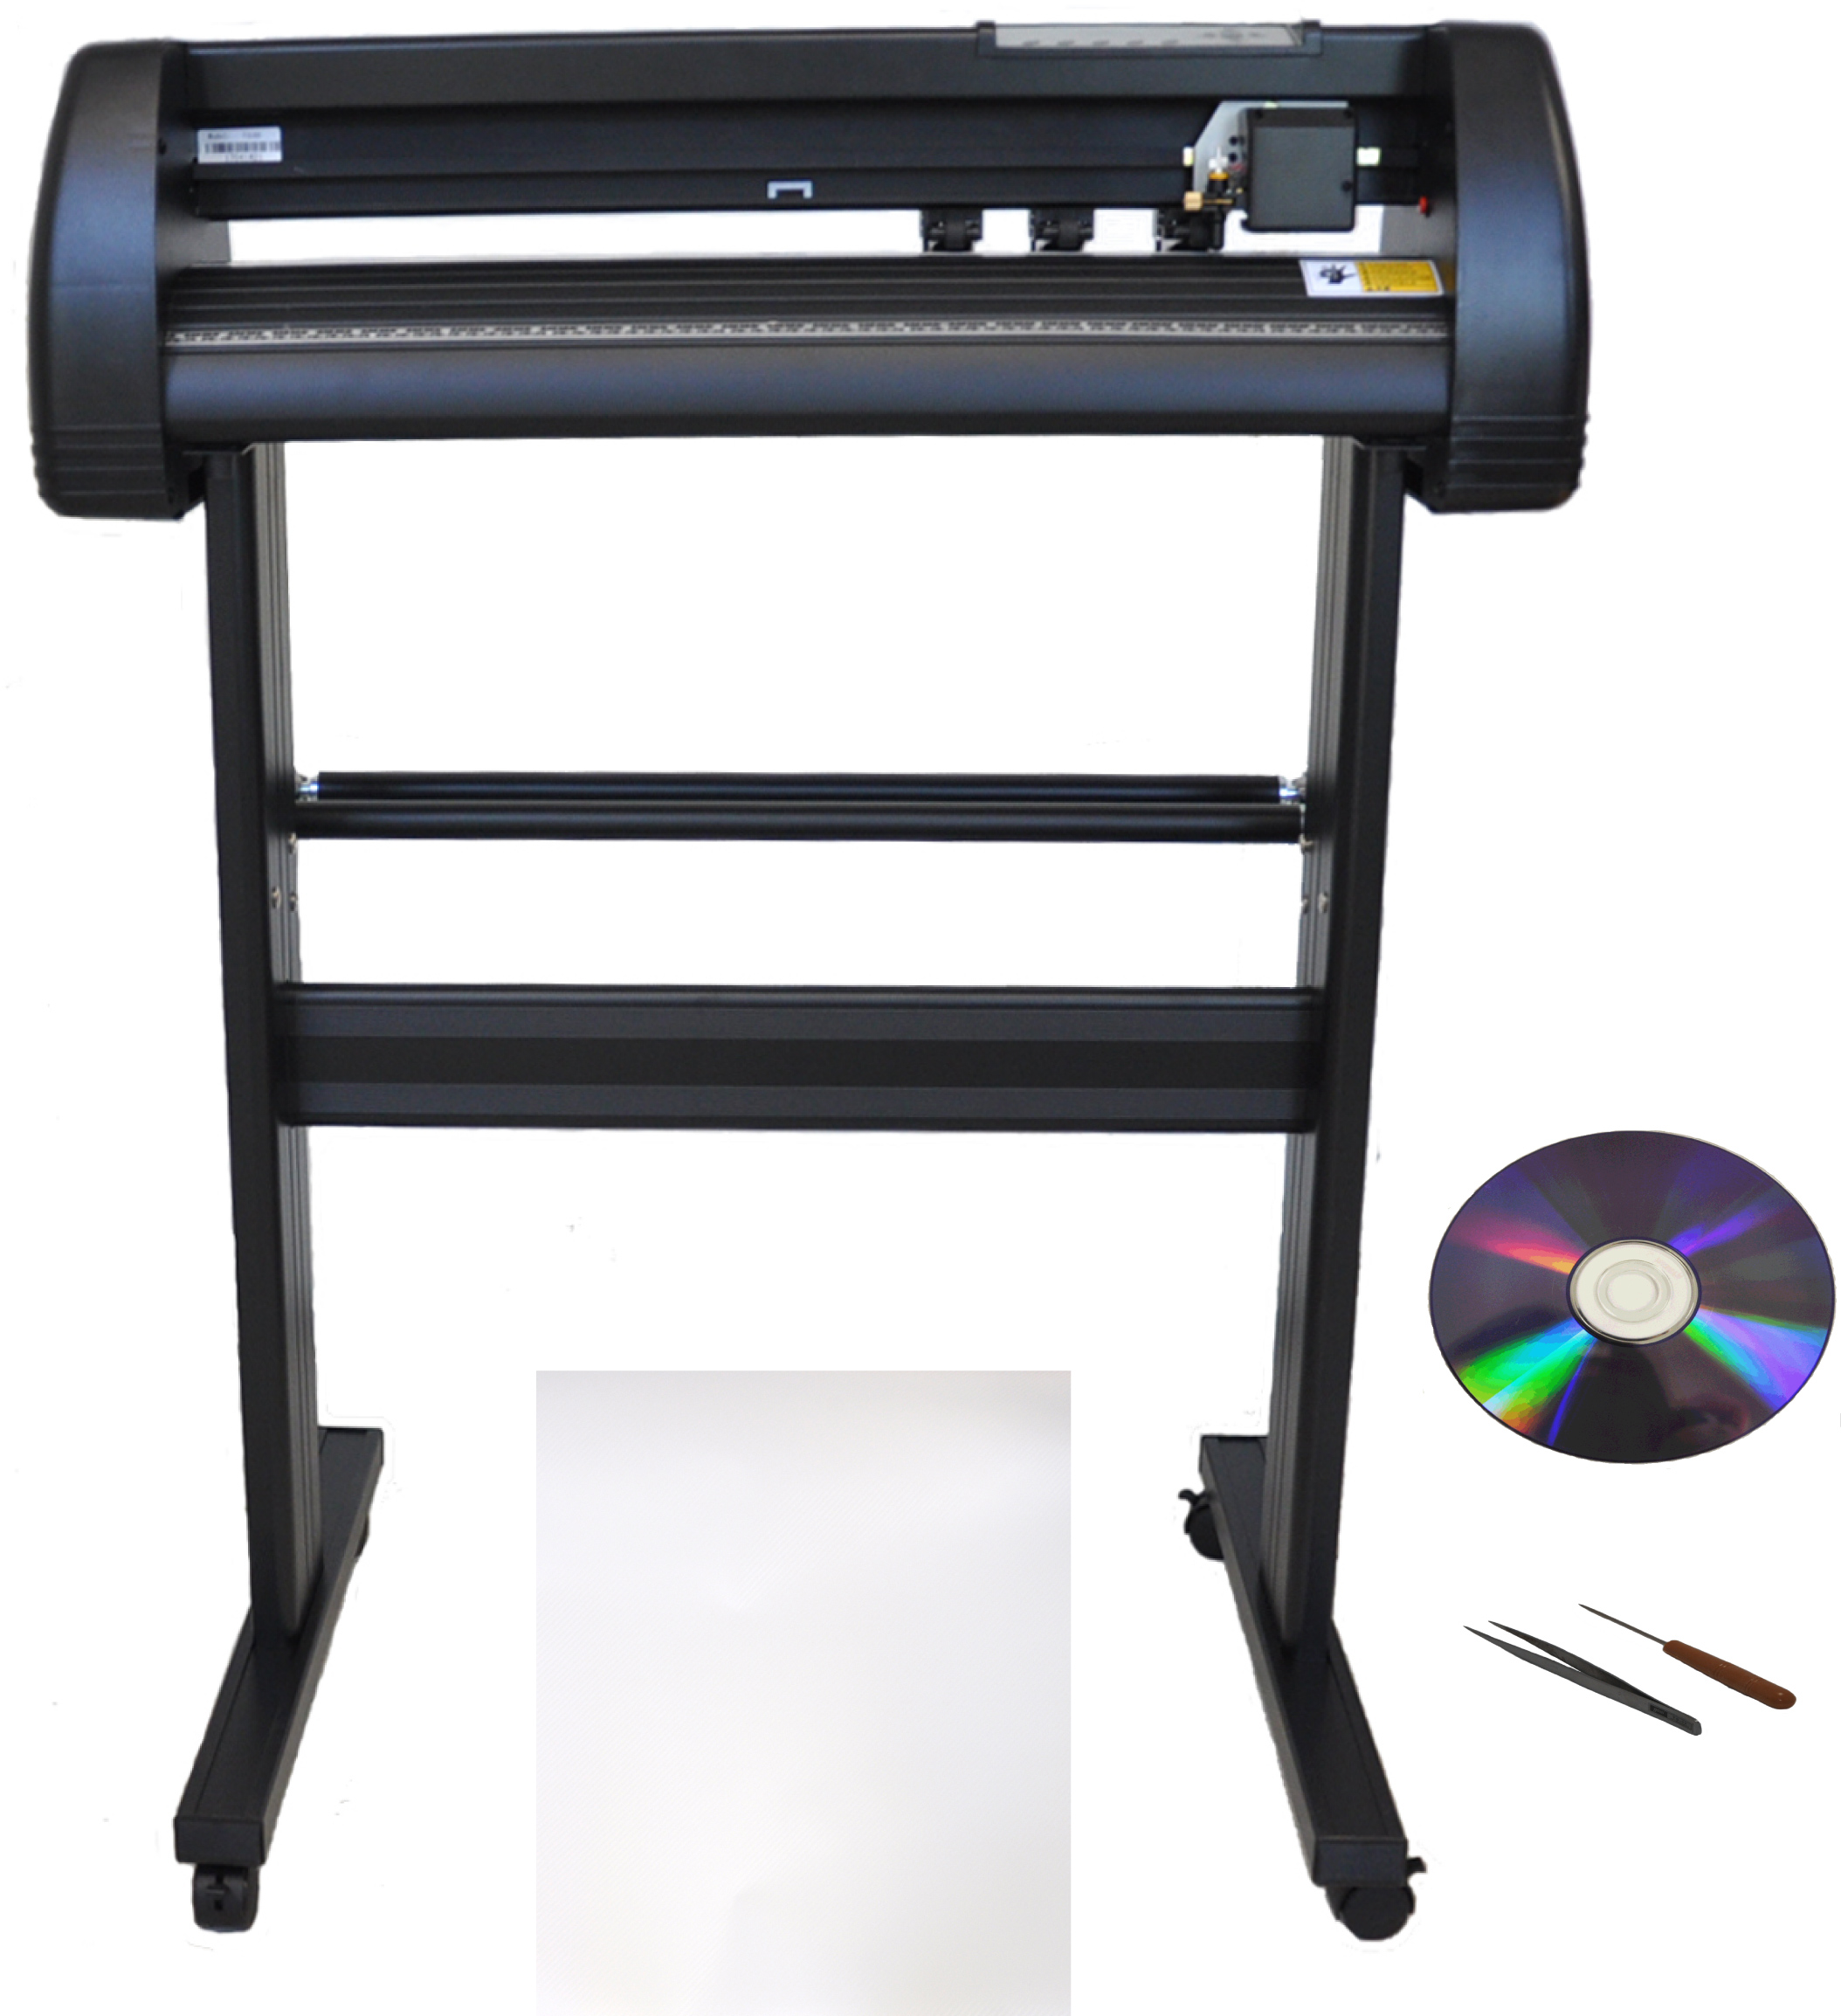 "28"" 500g Force Laser Point Vinyl Cutter Plotter Bundle+Laser Eye"